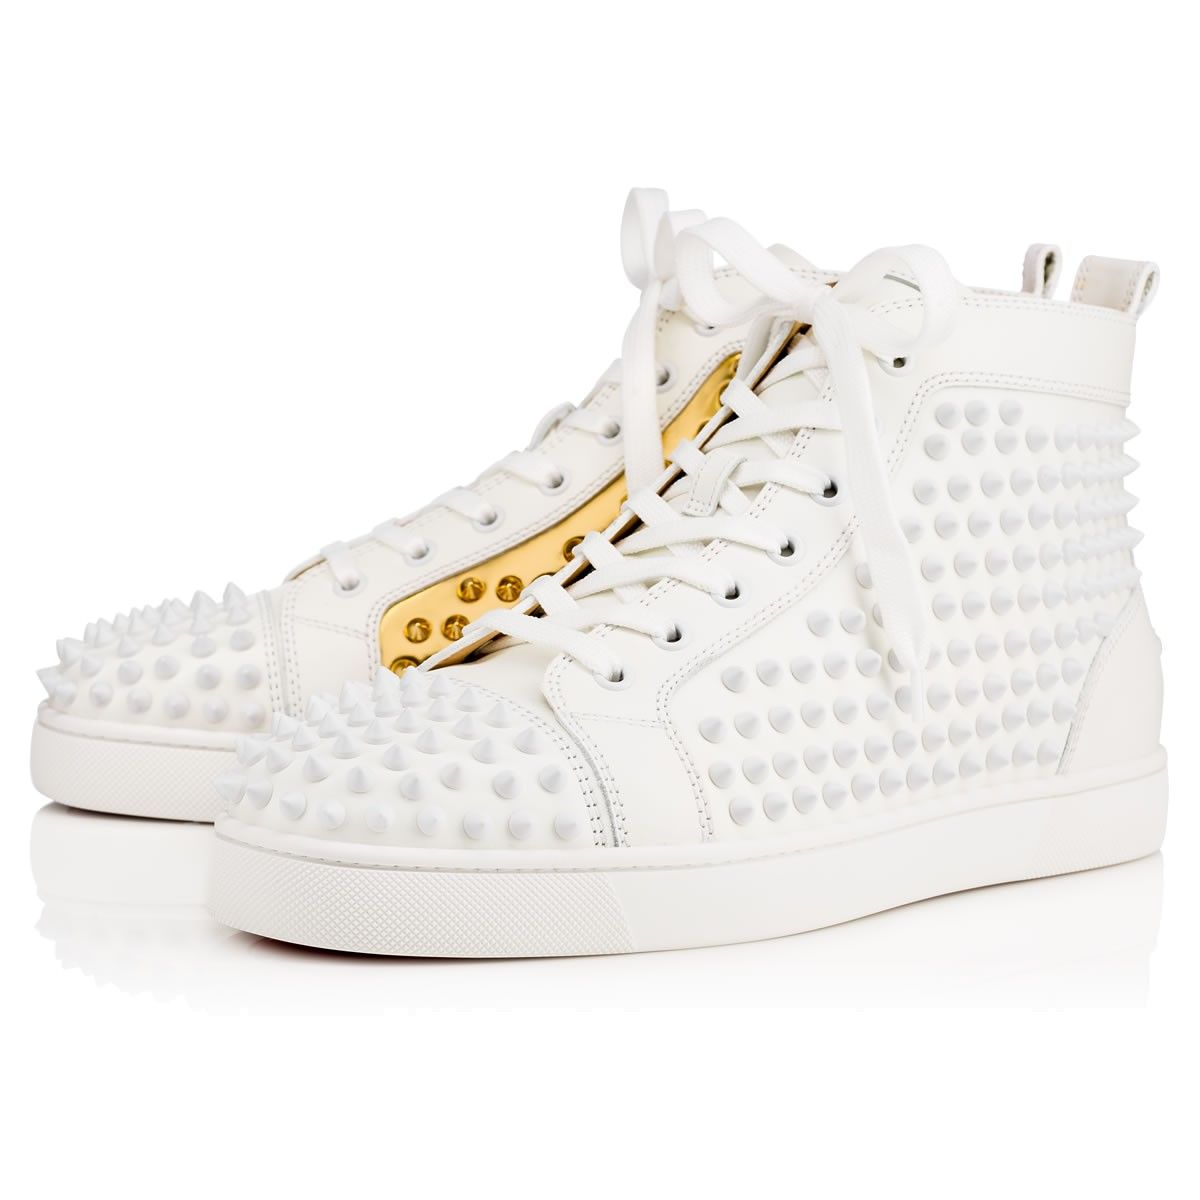 56482f008836 CHRISTIAN LOUBOUTIN Louis Spikes Men s Flat Latte Gold Leather - Men Shoes  - Christian Louboutin.  christianlouboutin  shoes